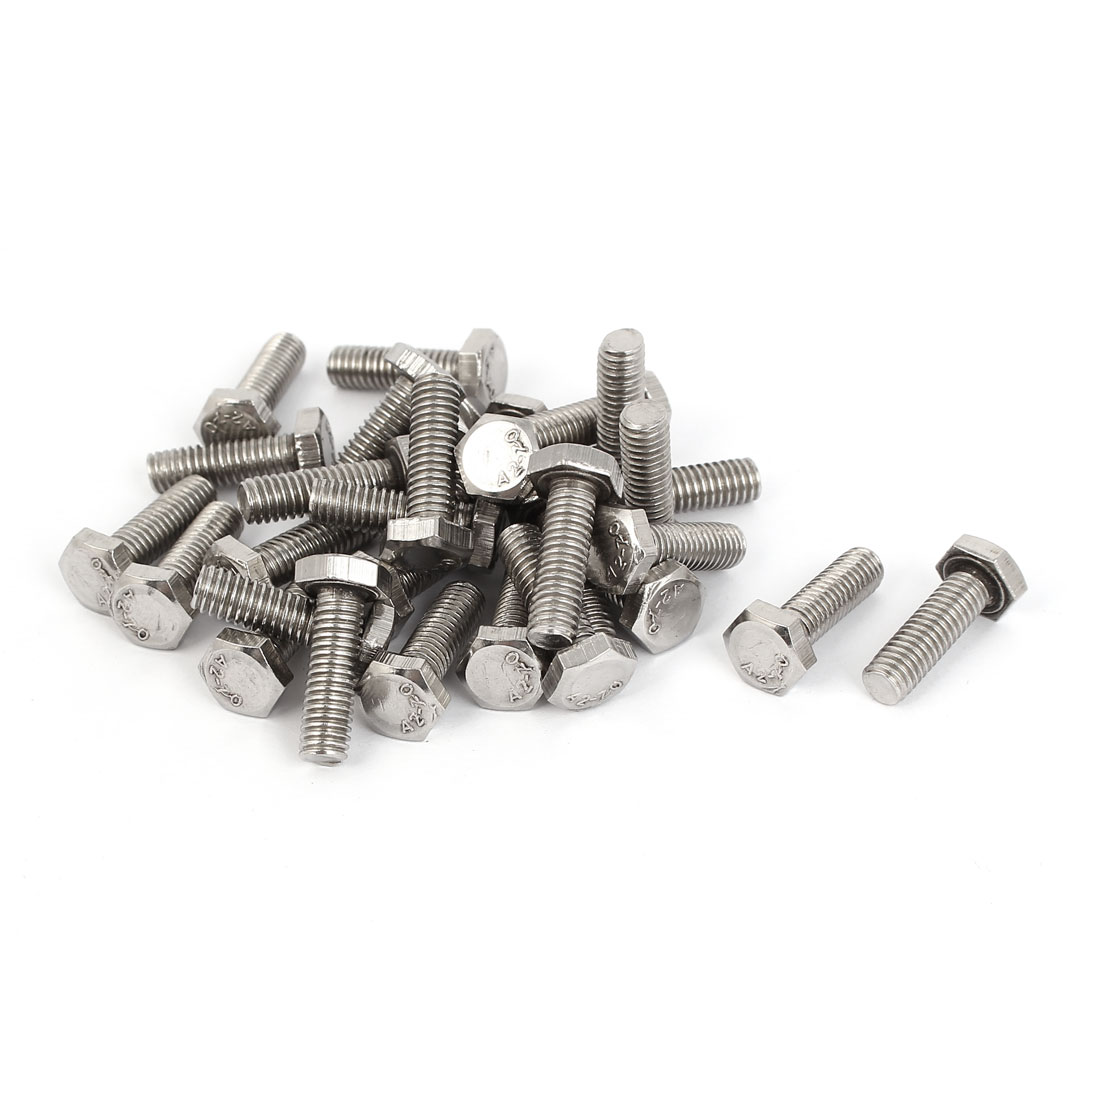 M6 x 20mm x 1mm Stainless Steel Fully Thread Hex Hexagon Screws DIN 933 30PCS